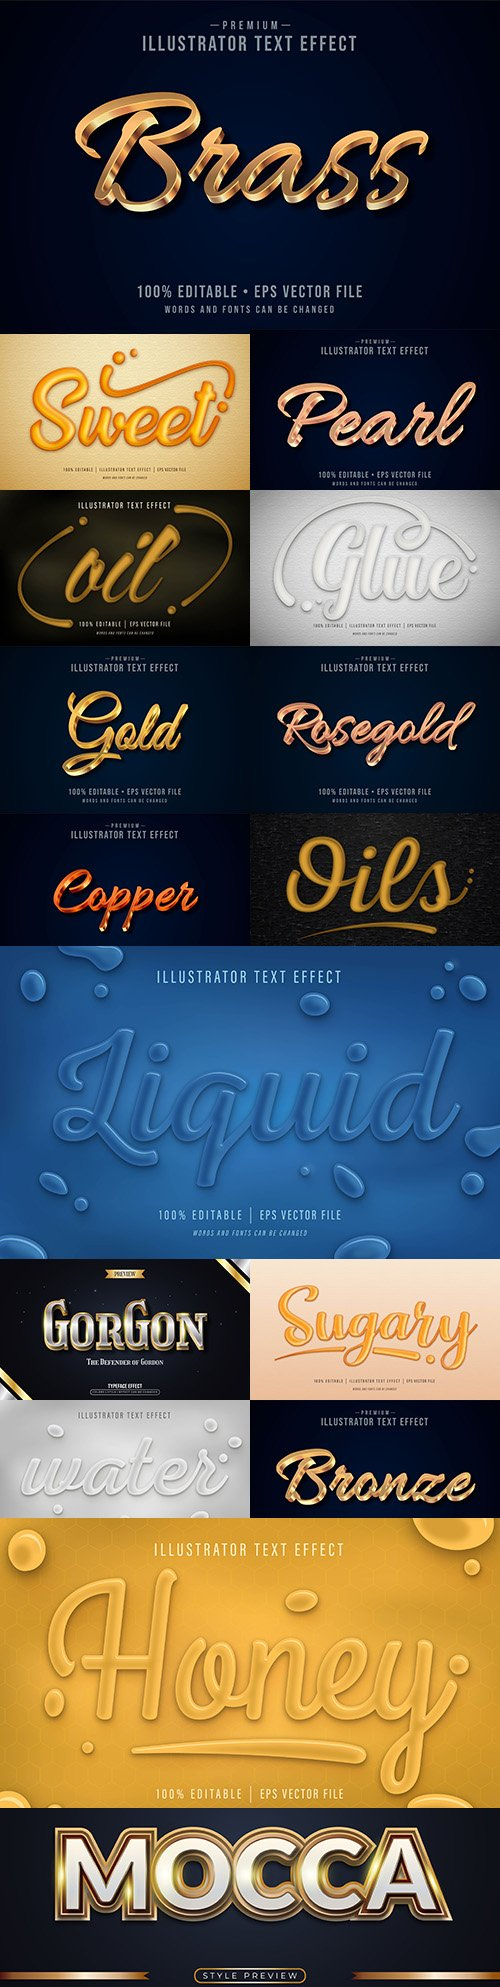 Editable font effect text collection illustration design 228